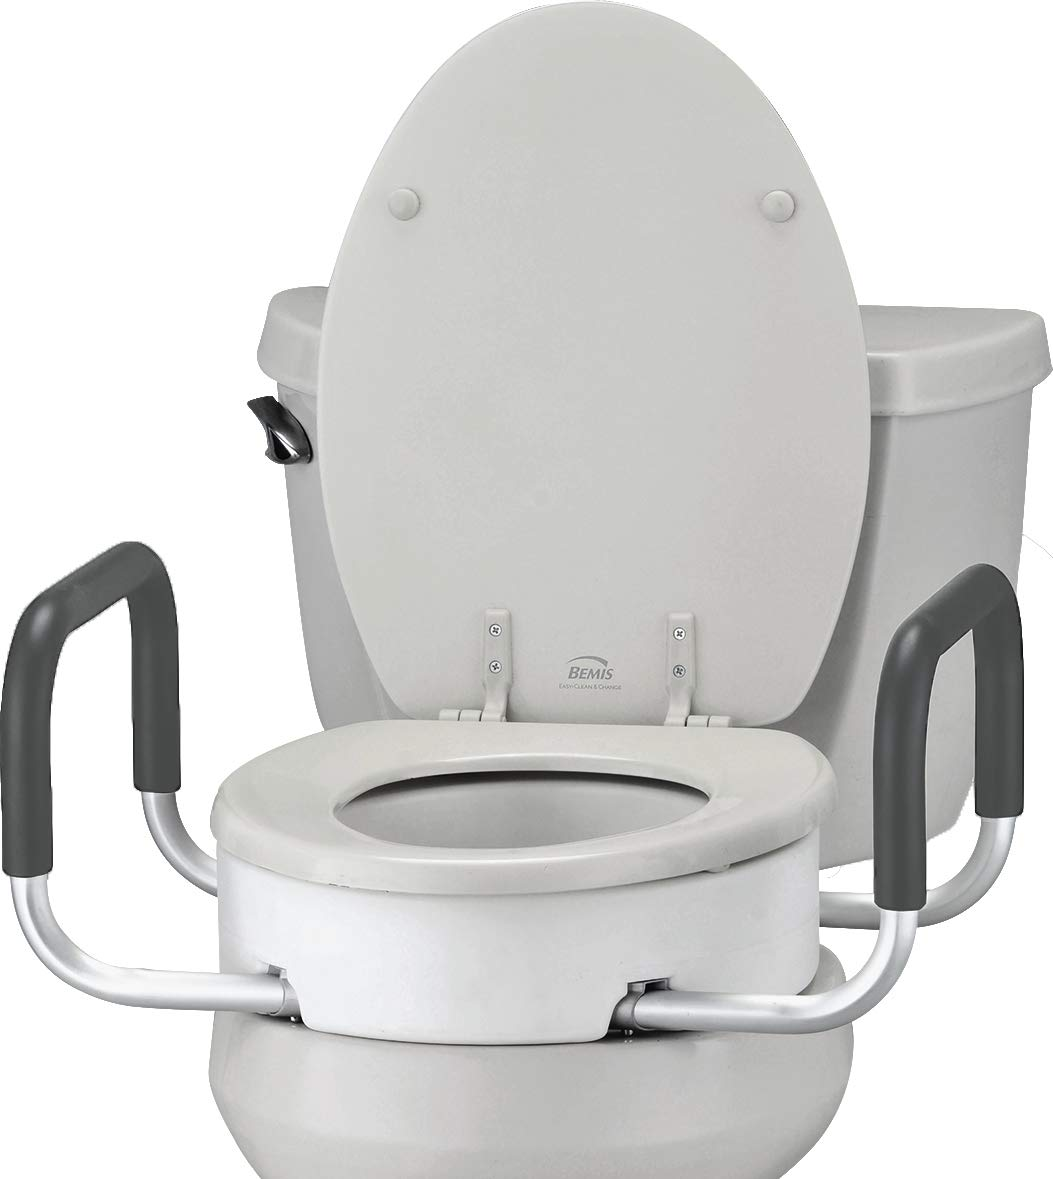 Groovy Nova Toilet Seat Riser With Handles Raised Toilet Seat For Under Seat With Padded Arms For Elongated Toilet Seat Spiritservingveterans Wood Chair Design Ideas Spiritservingveteransorg